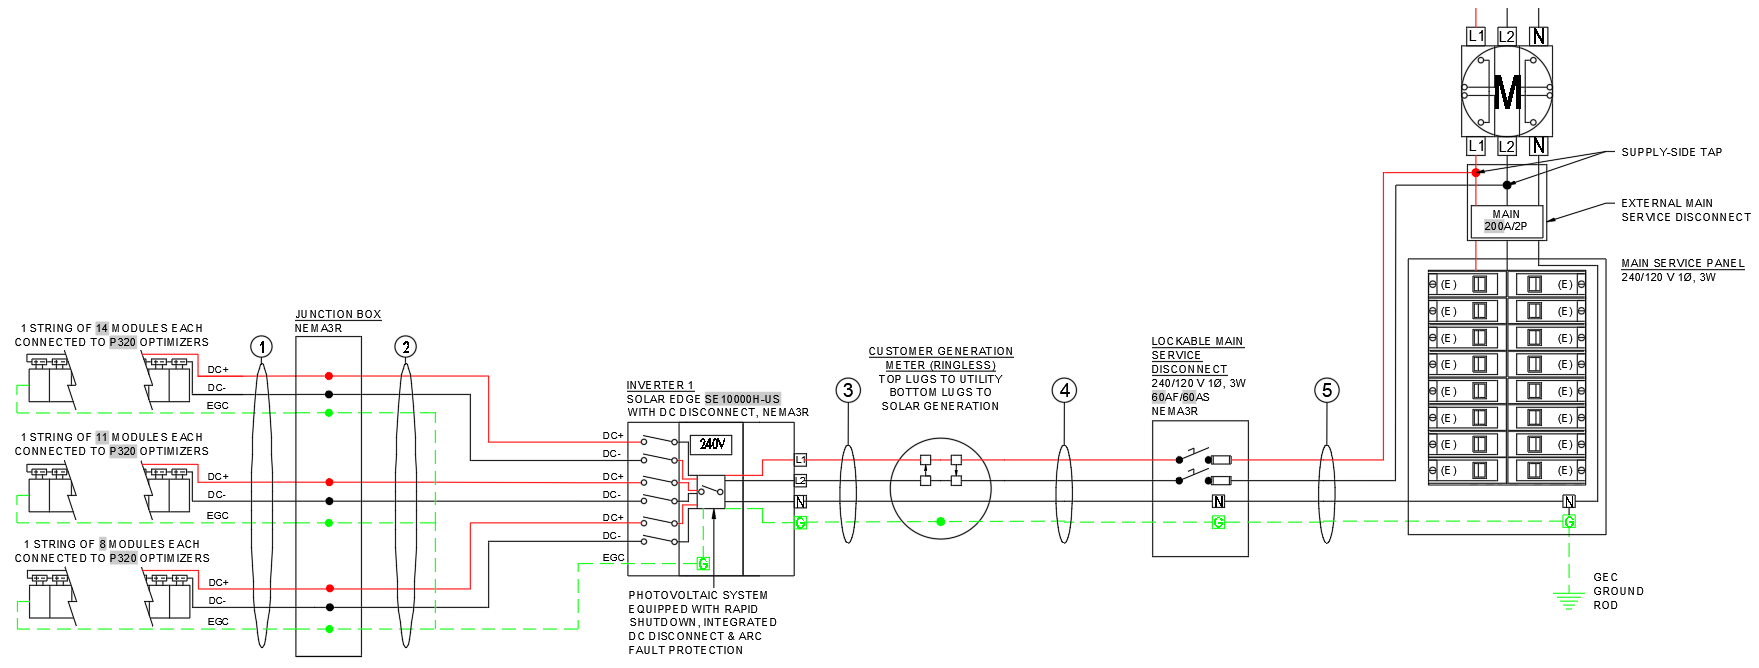 Electrical Line Diagram for Solar